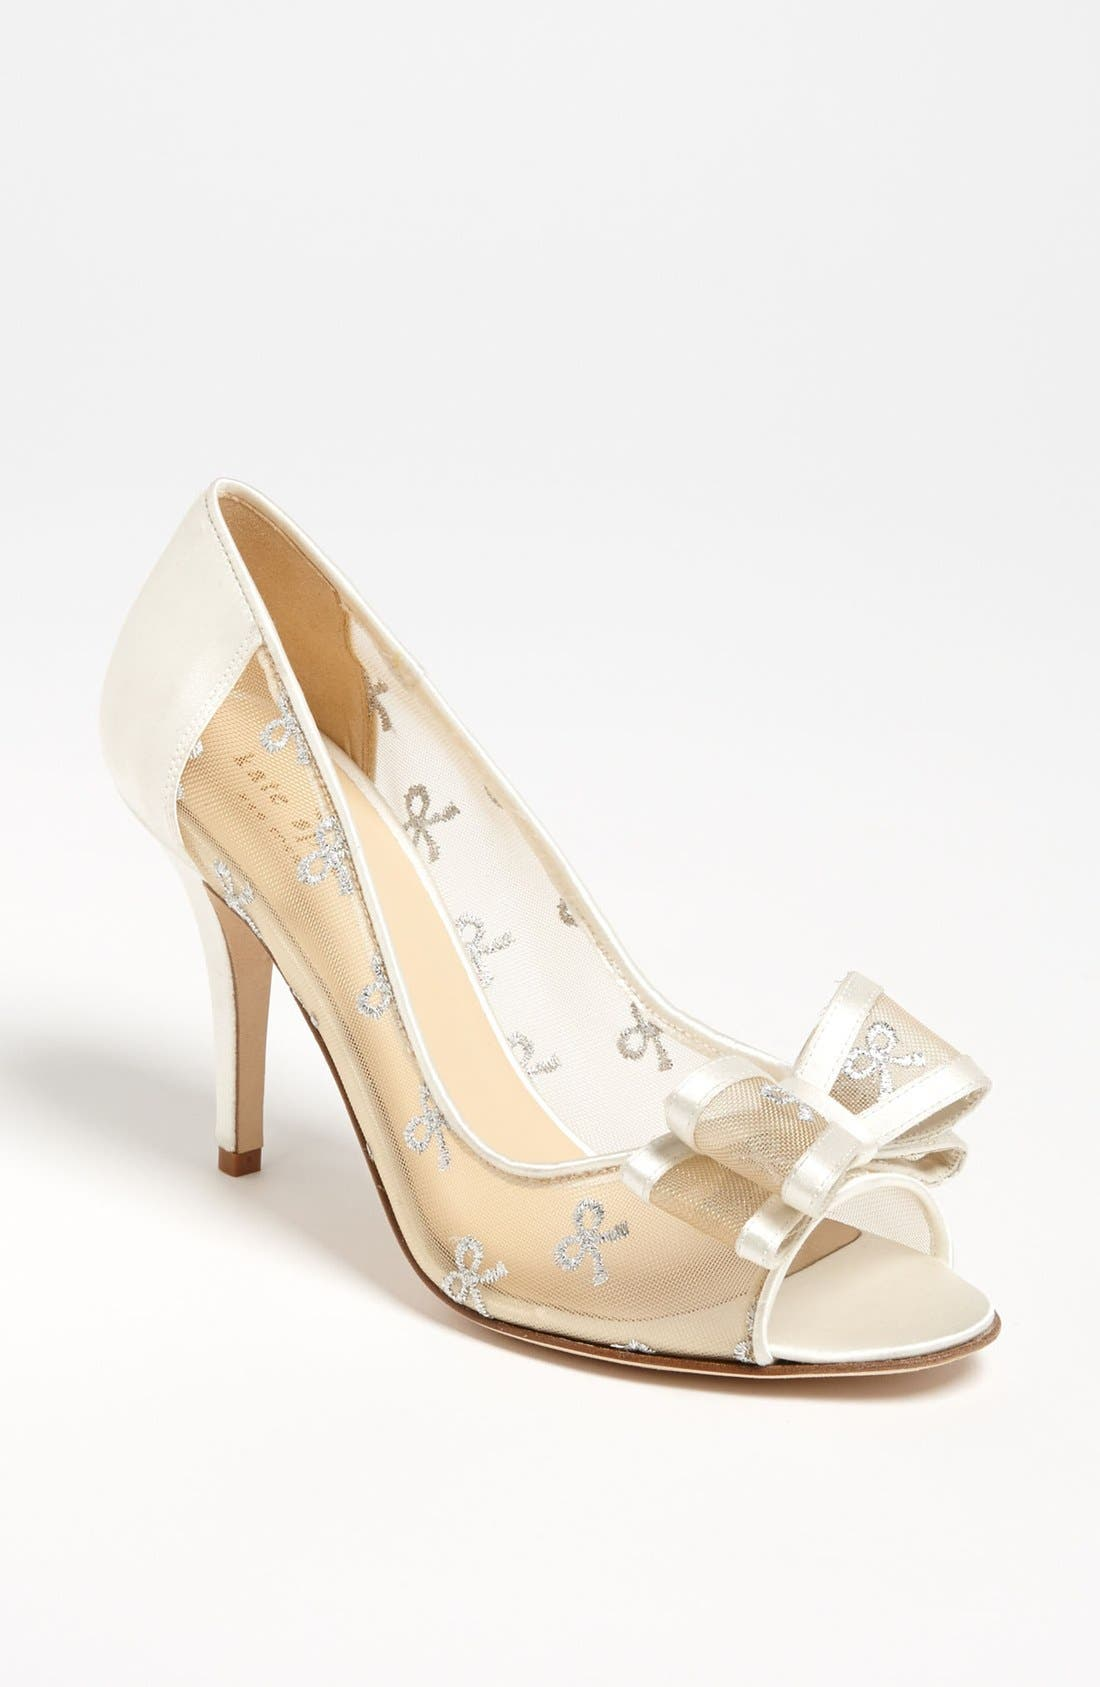 Alternate Image 1 Selected - kate spade new york 'calina' pump